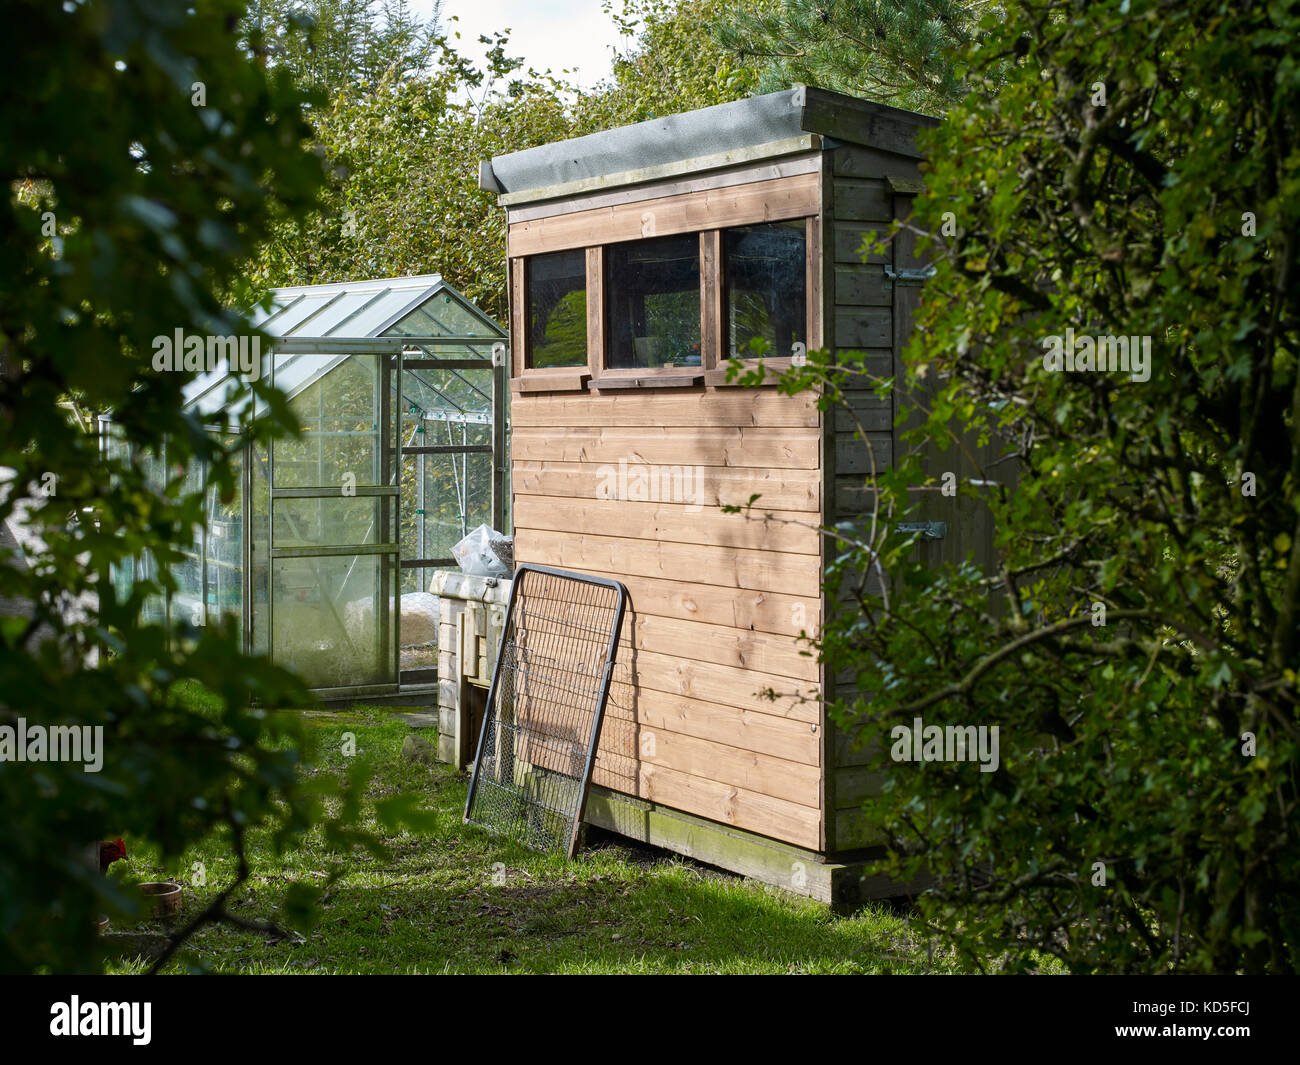 examples of garden sheds in a nidderdale garden at 900ft north yorkshire stock image - Garden Sheds Huddersfield